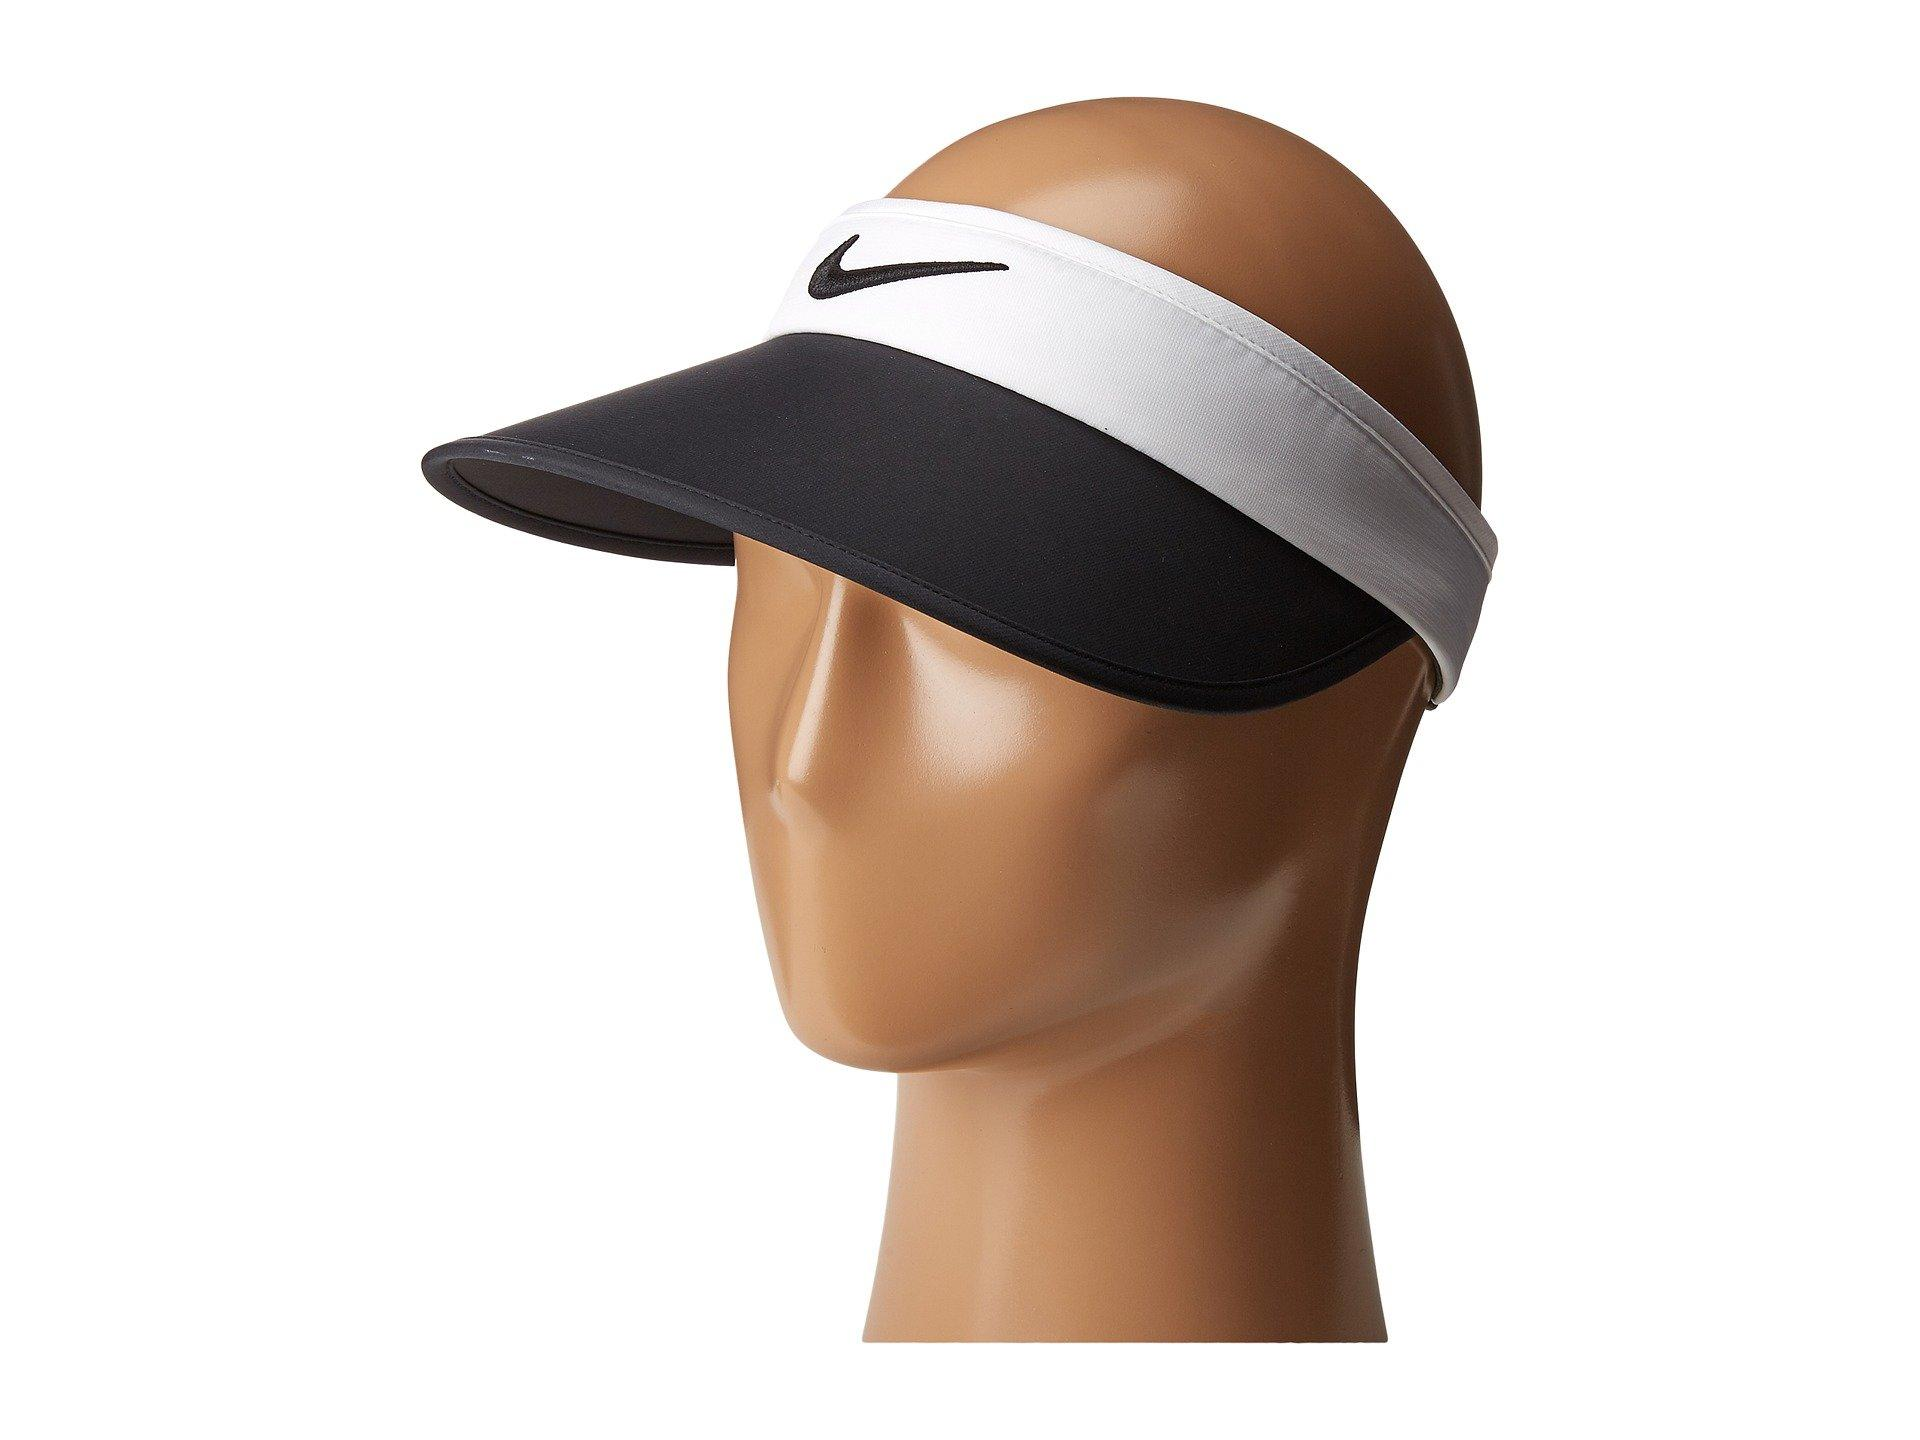 49cfd8c1 Nike Big Bill Visor 3.0 In Black/Max Orange/Anthracite/White | ModeSens